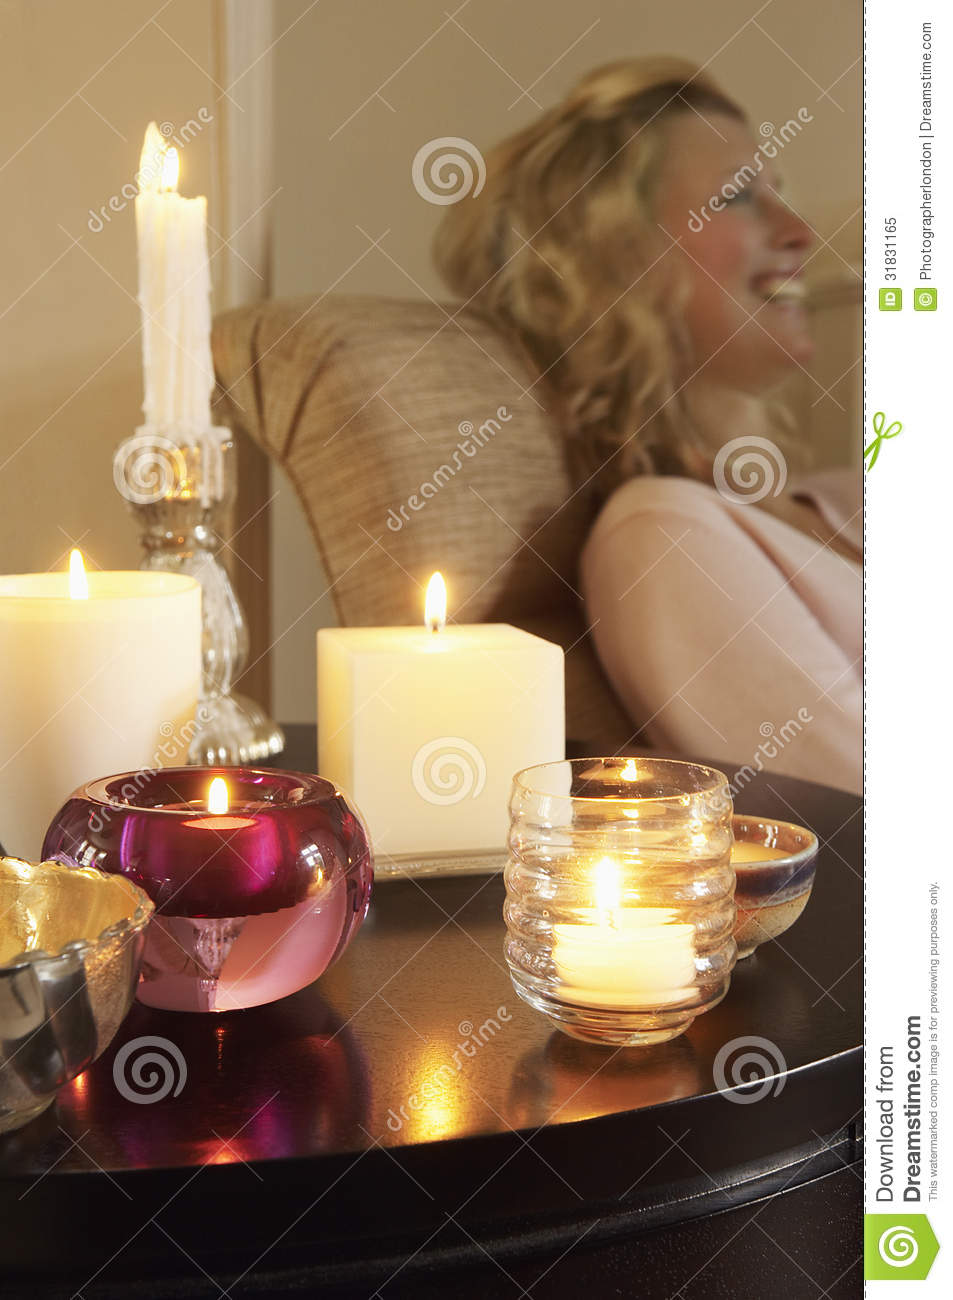 Woman Relaxing By Table With Lit Candles Stock Image